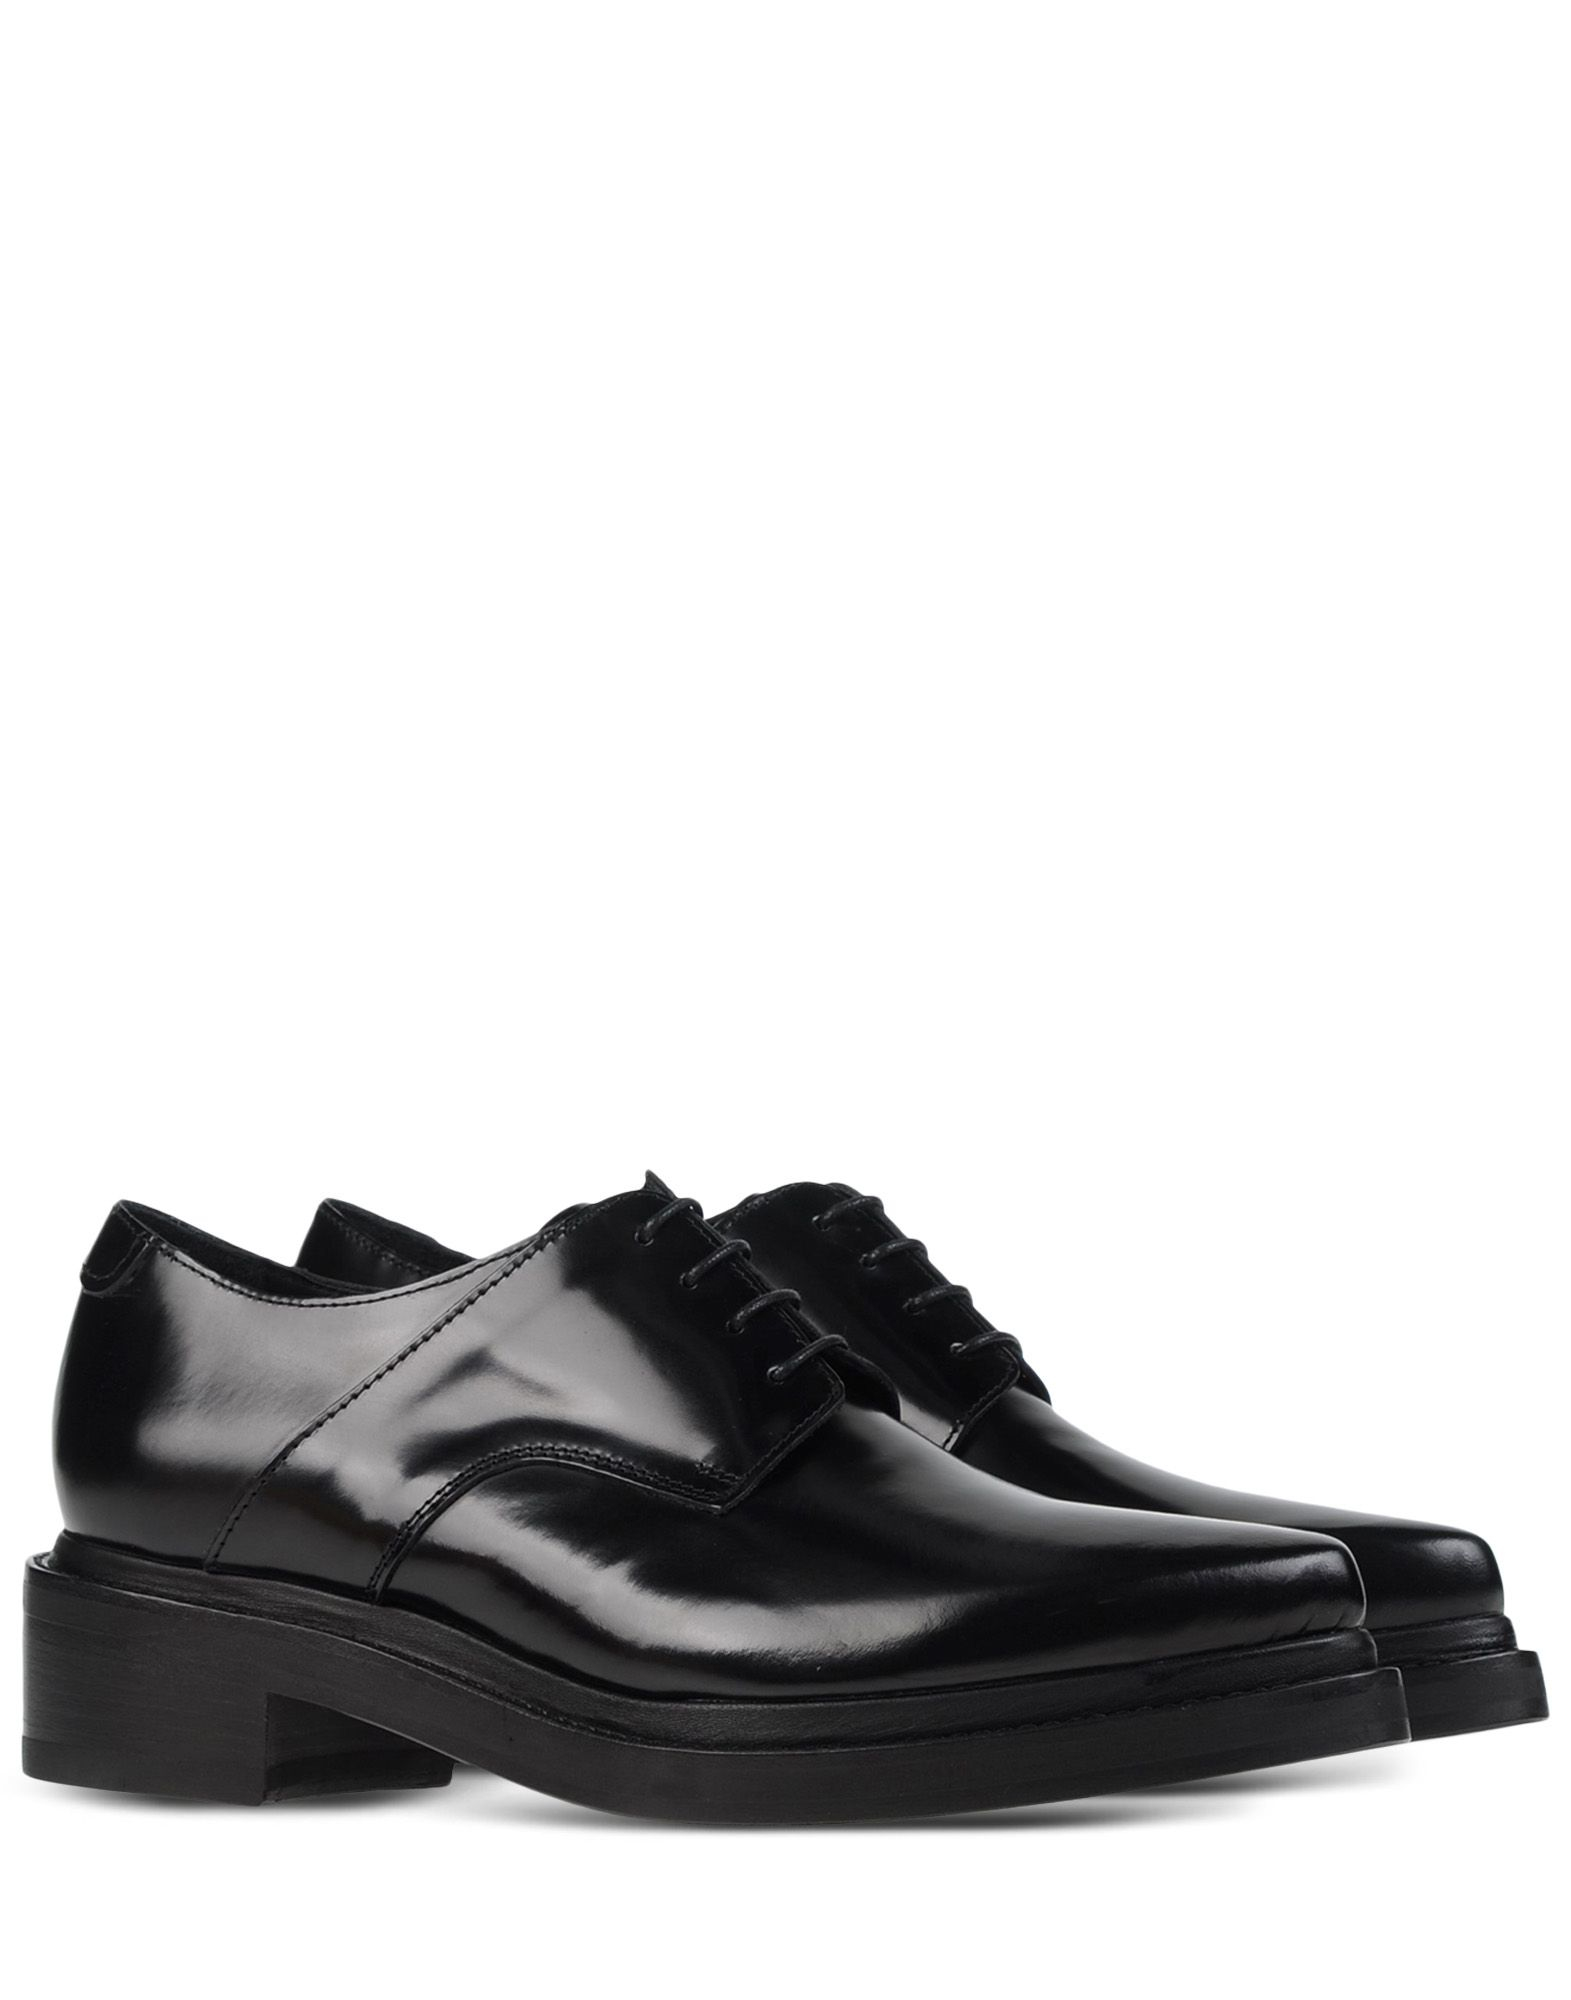 Acne Laced Shoes in Black